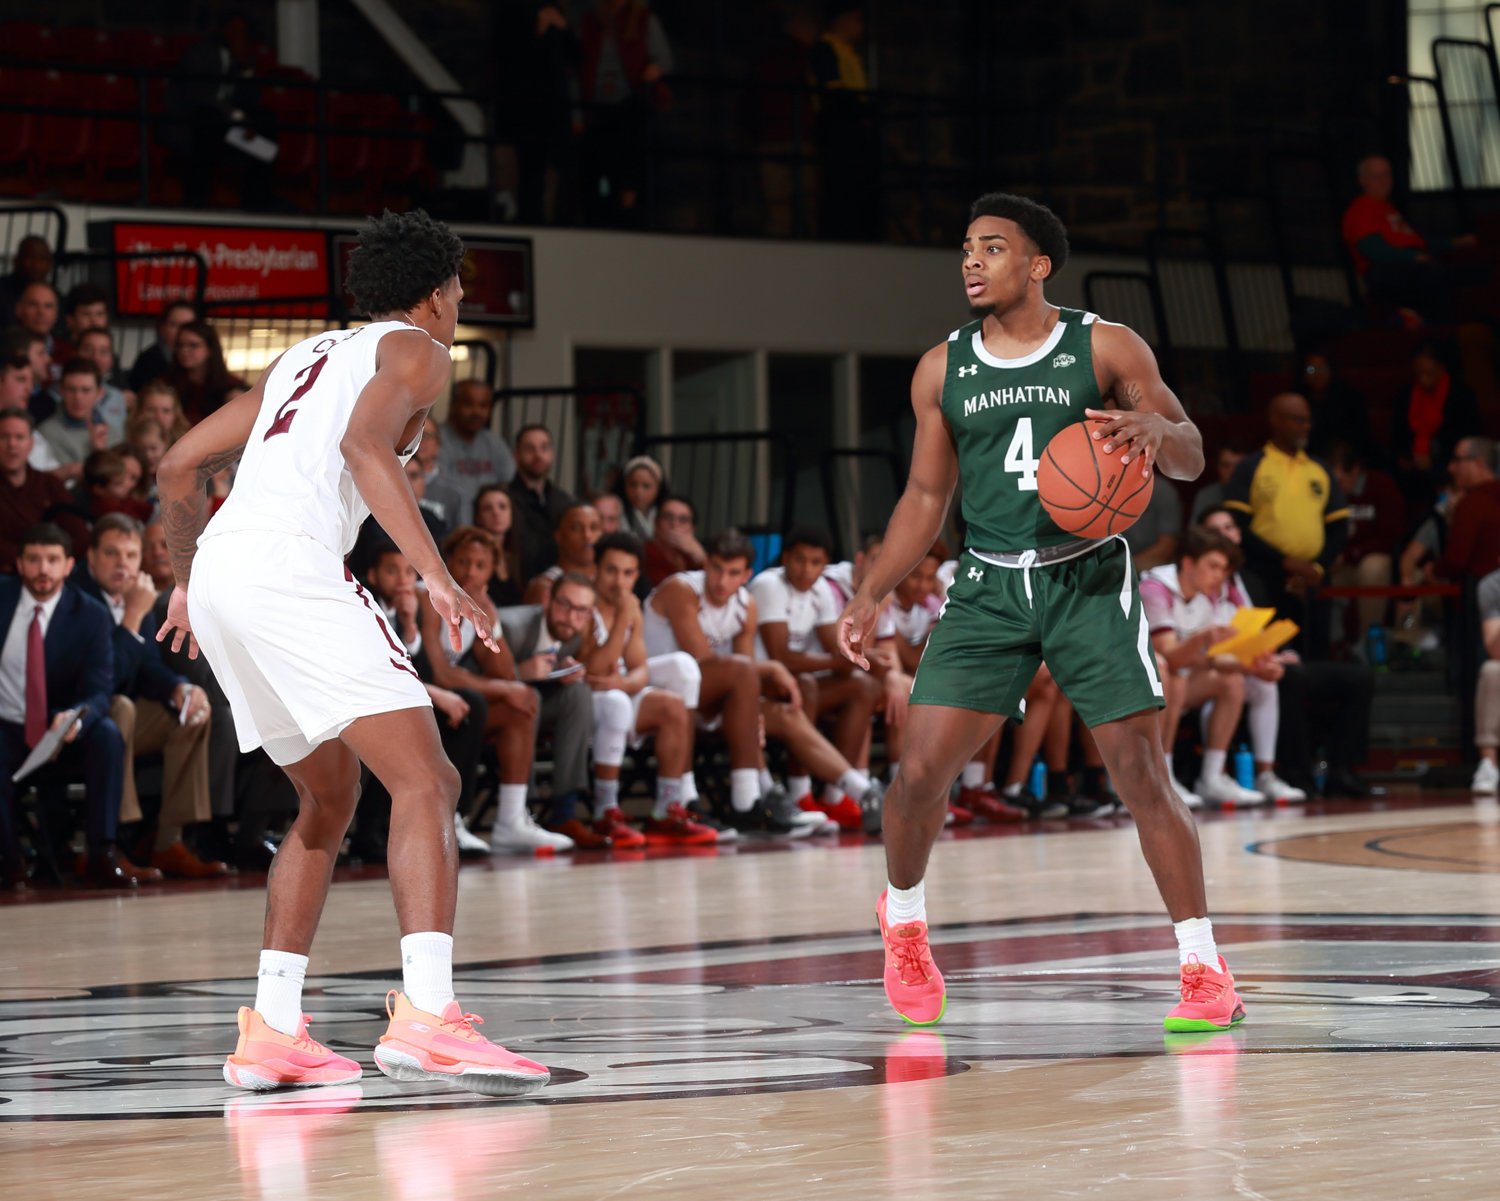 Manhattan College sophomore Samir Stewart is leading the Jaspers in scoring this season through the first eight games.